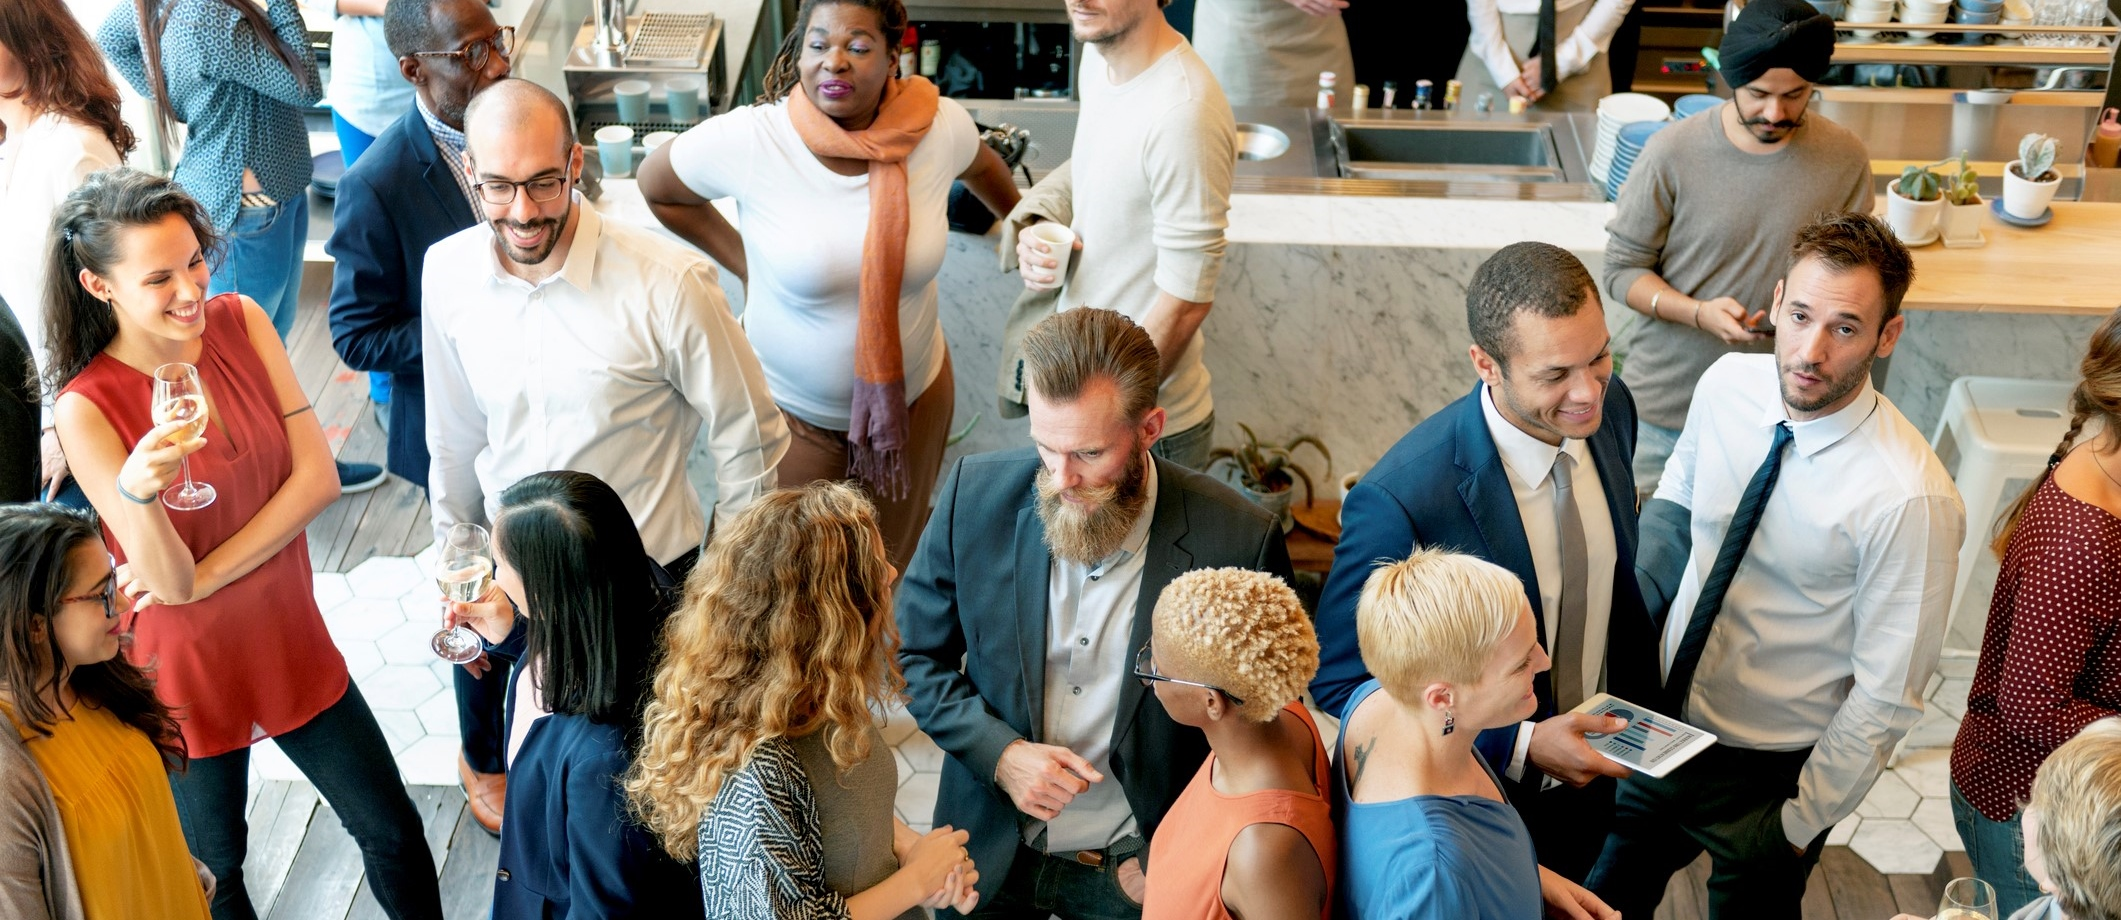 5-ways-to-prepare-for-a-networking-event-people-networking